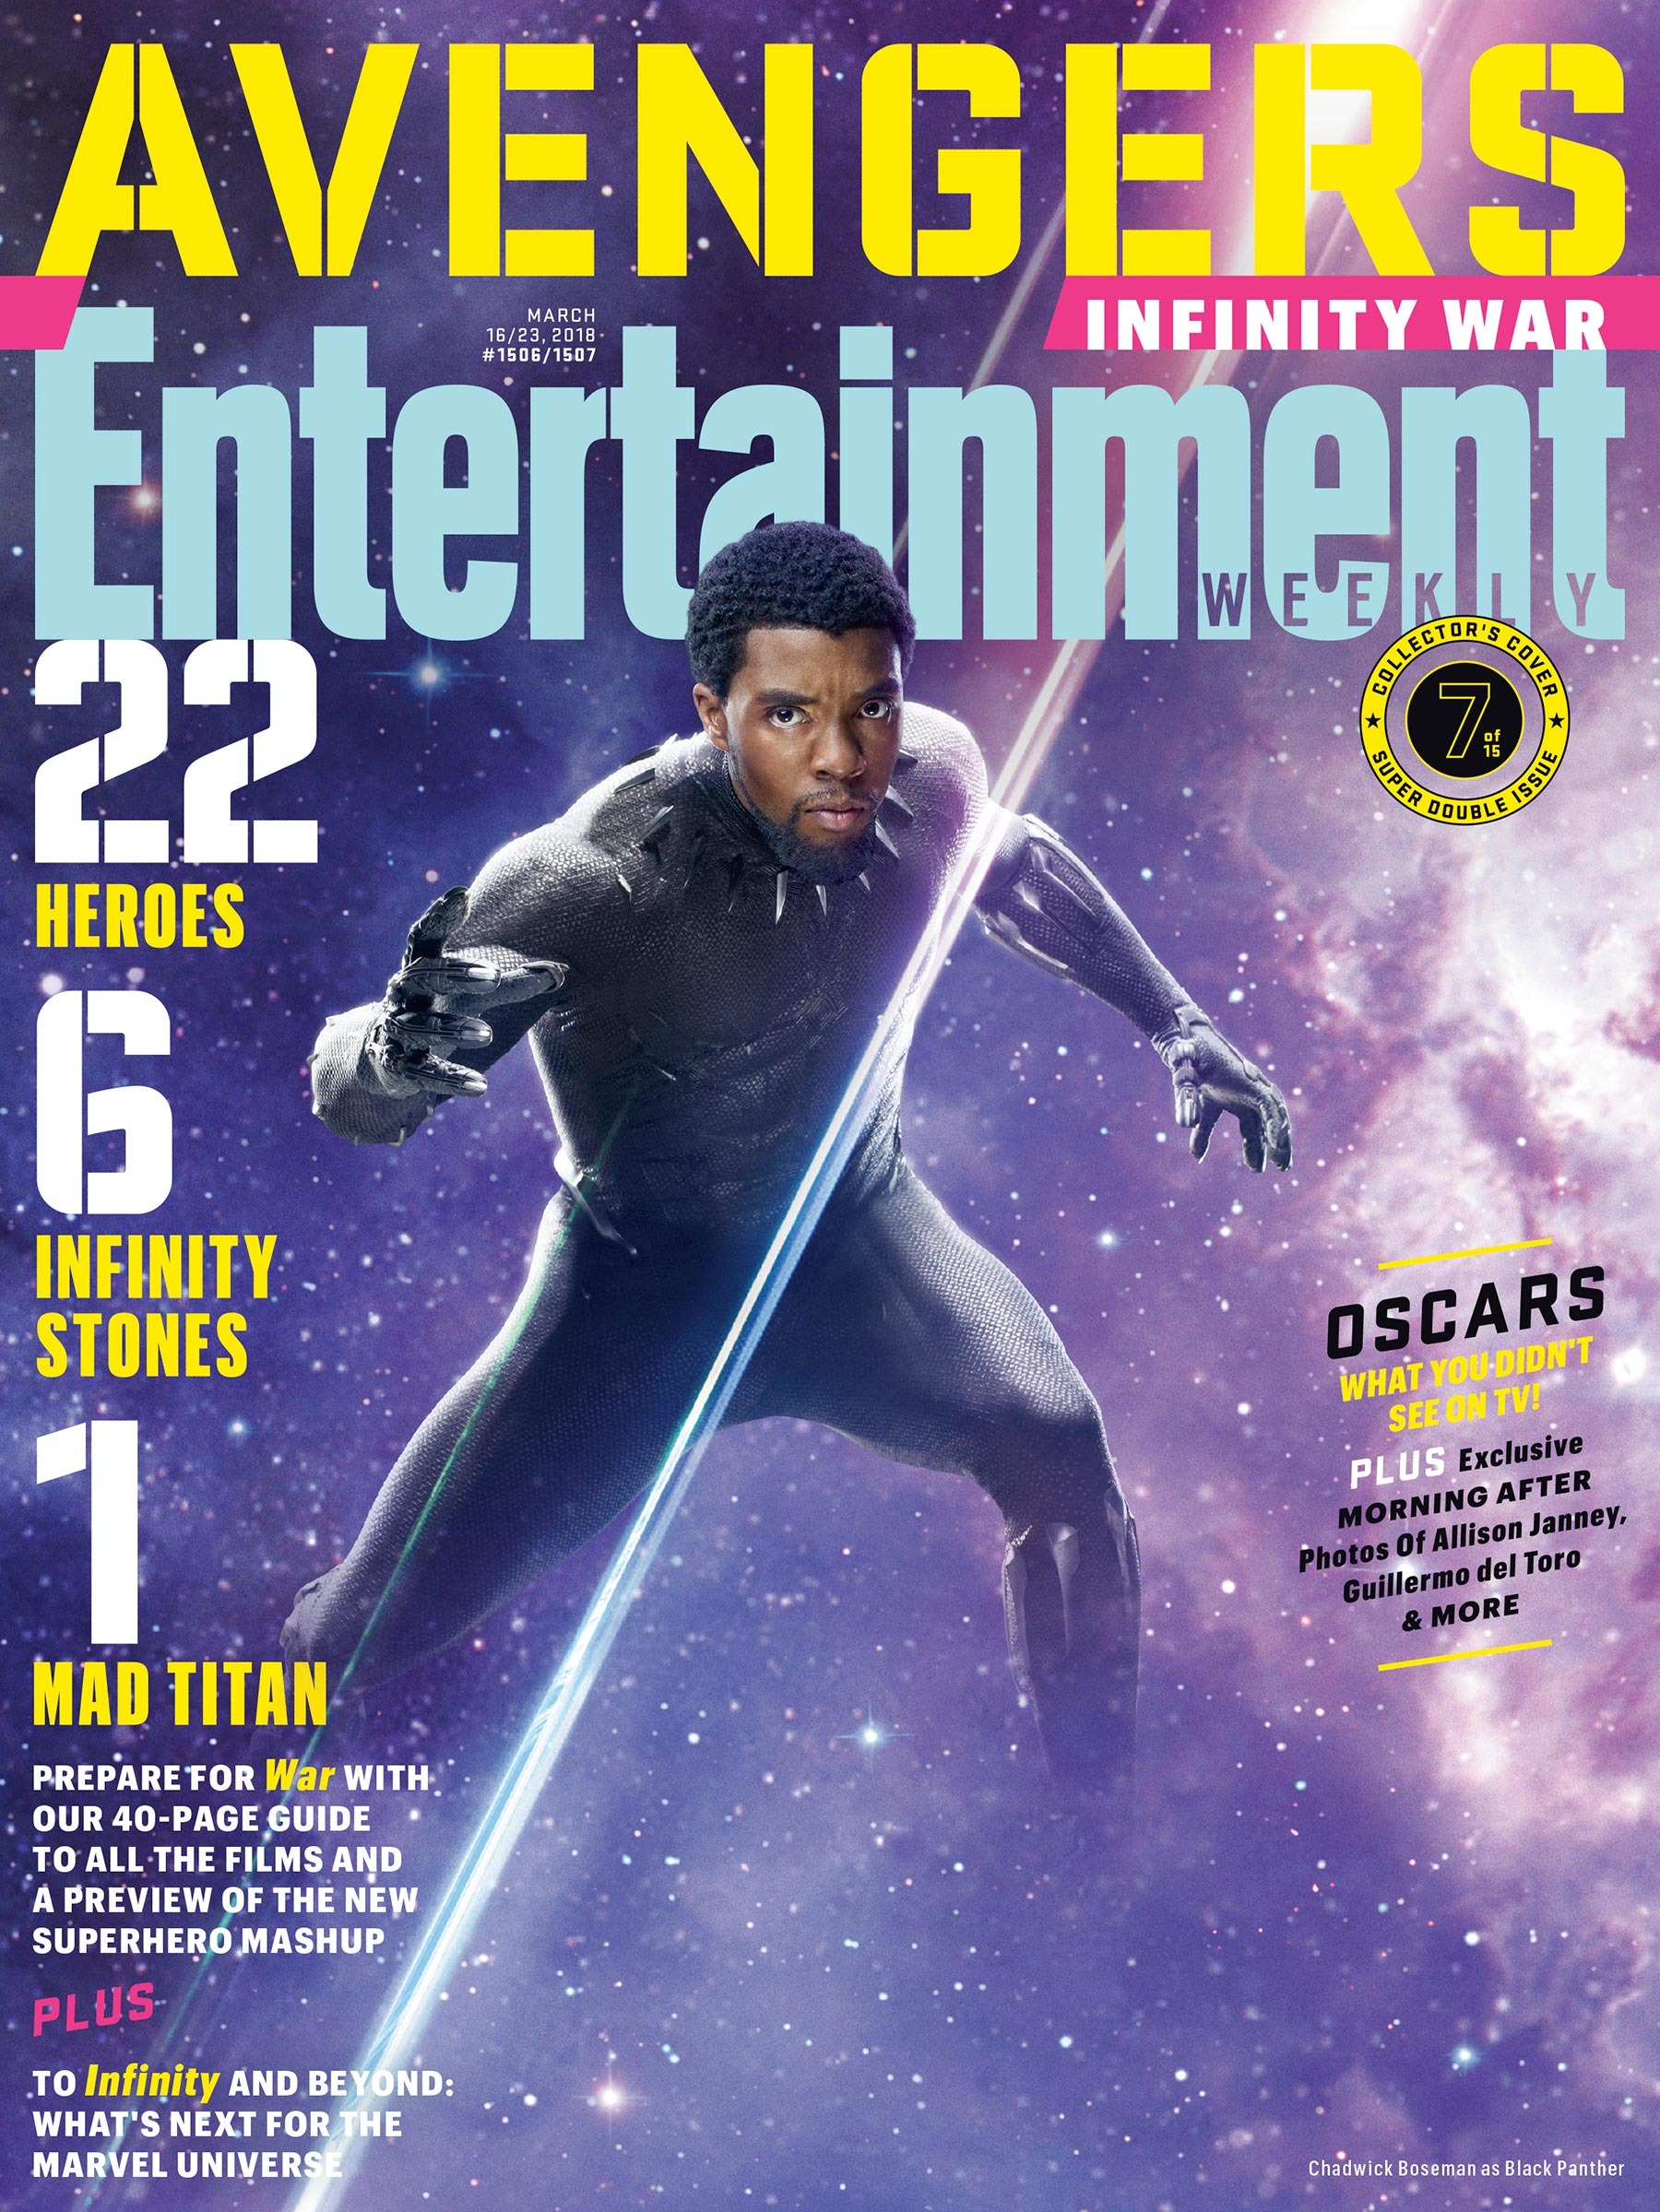 07-ewcover-avengers-black-panther